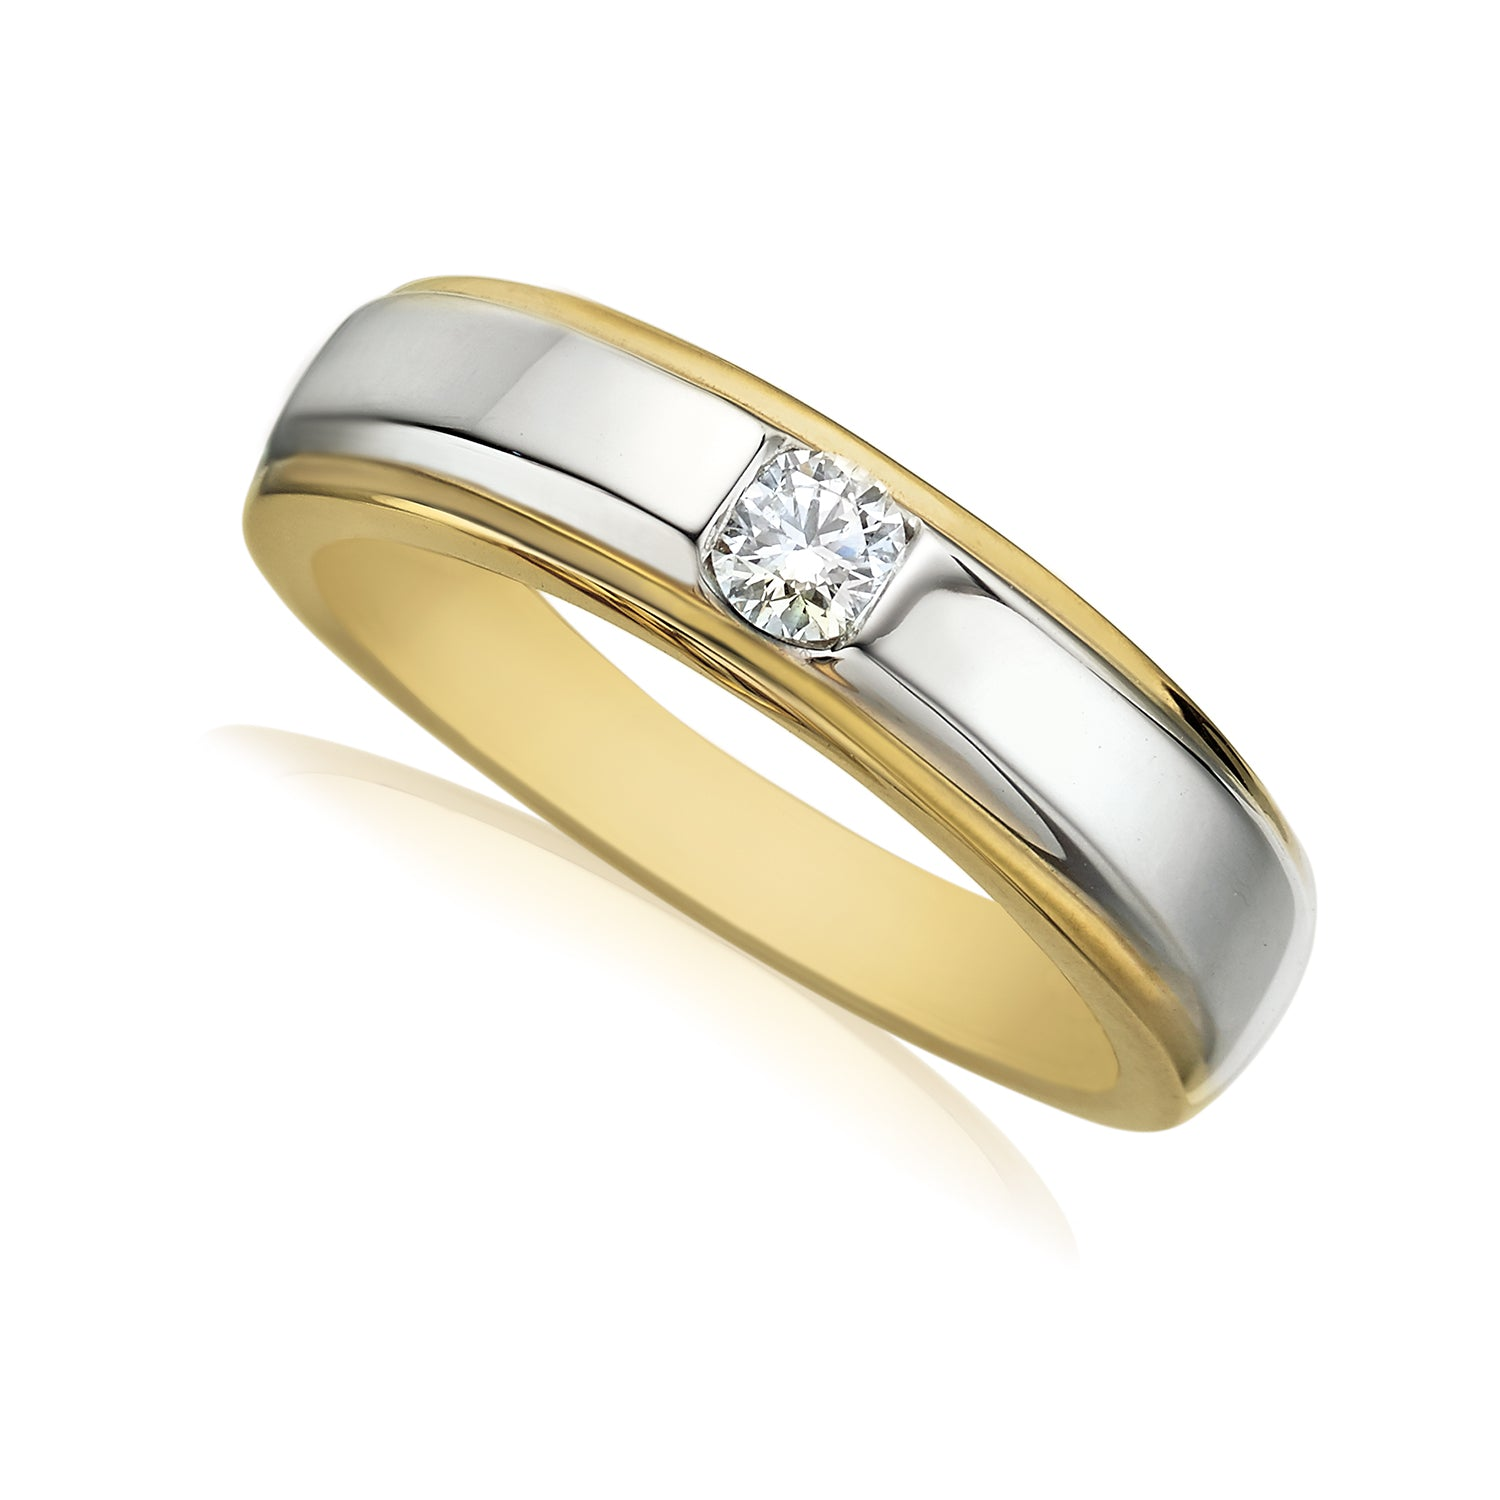 Rand 18ct Two Tone Gold Round Brilliant Cut with 1/4 CARAT tw of Diamonds